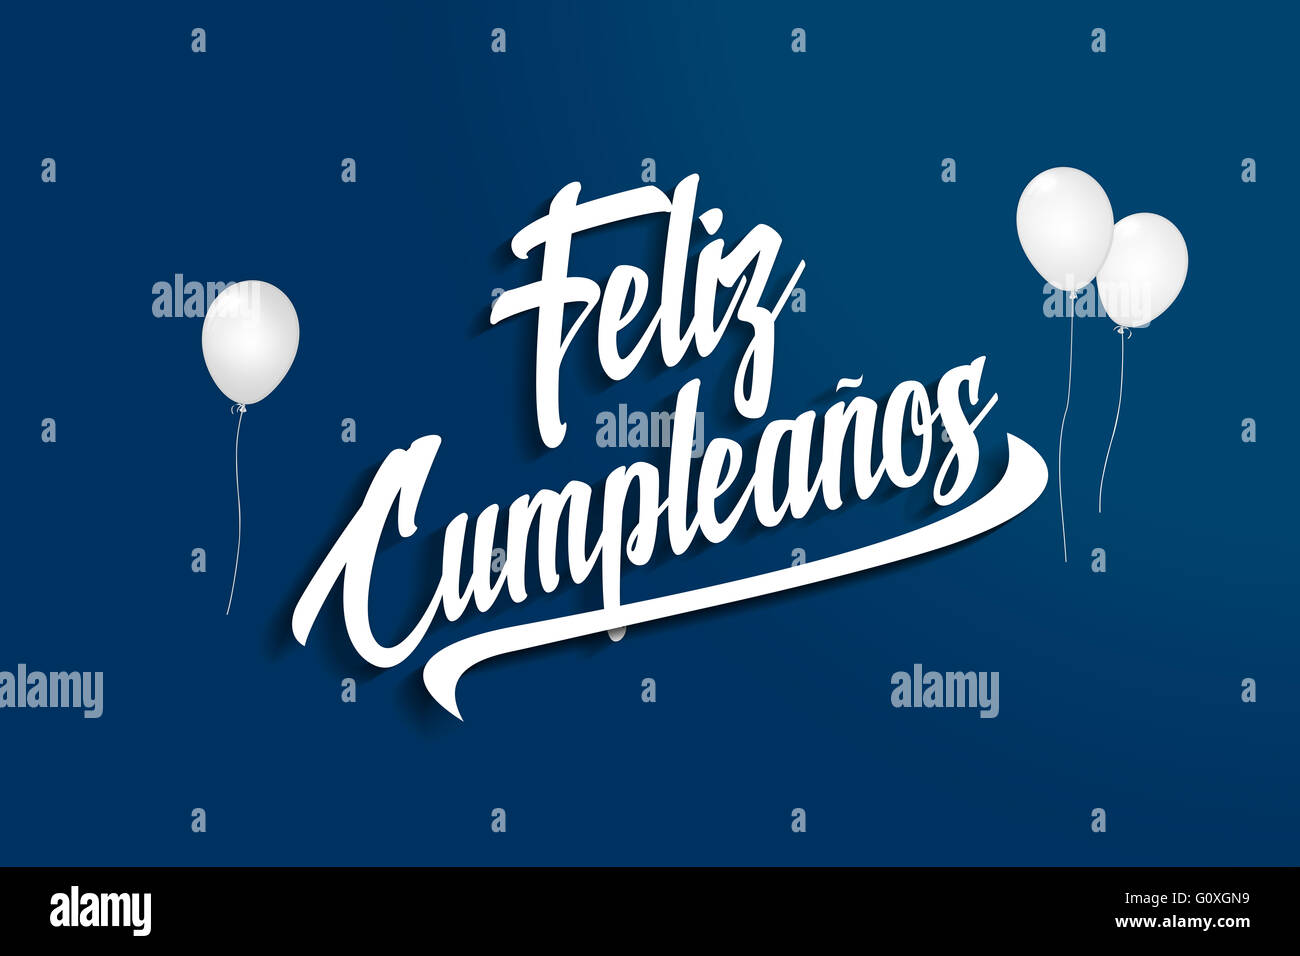 Feliz Cumpleanos Happy Birthday In Stock Photos Feliz Cumpleanos